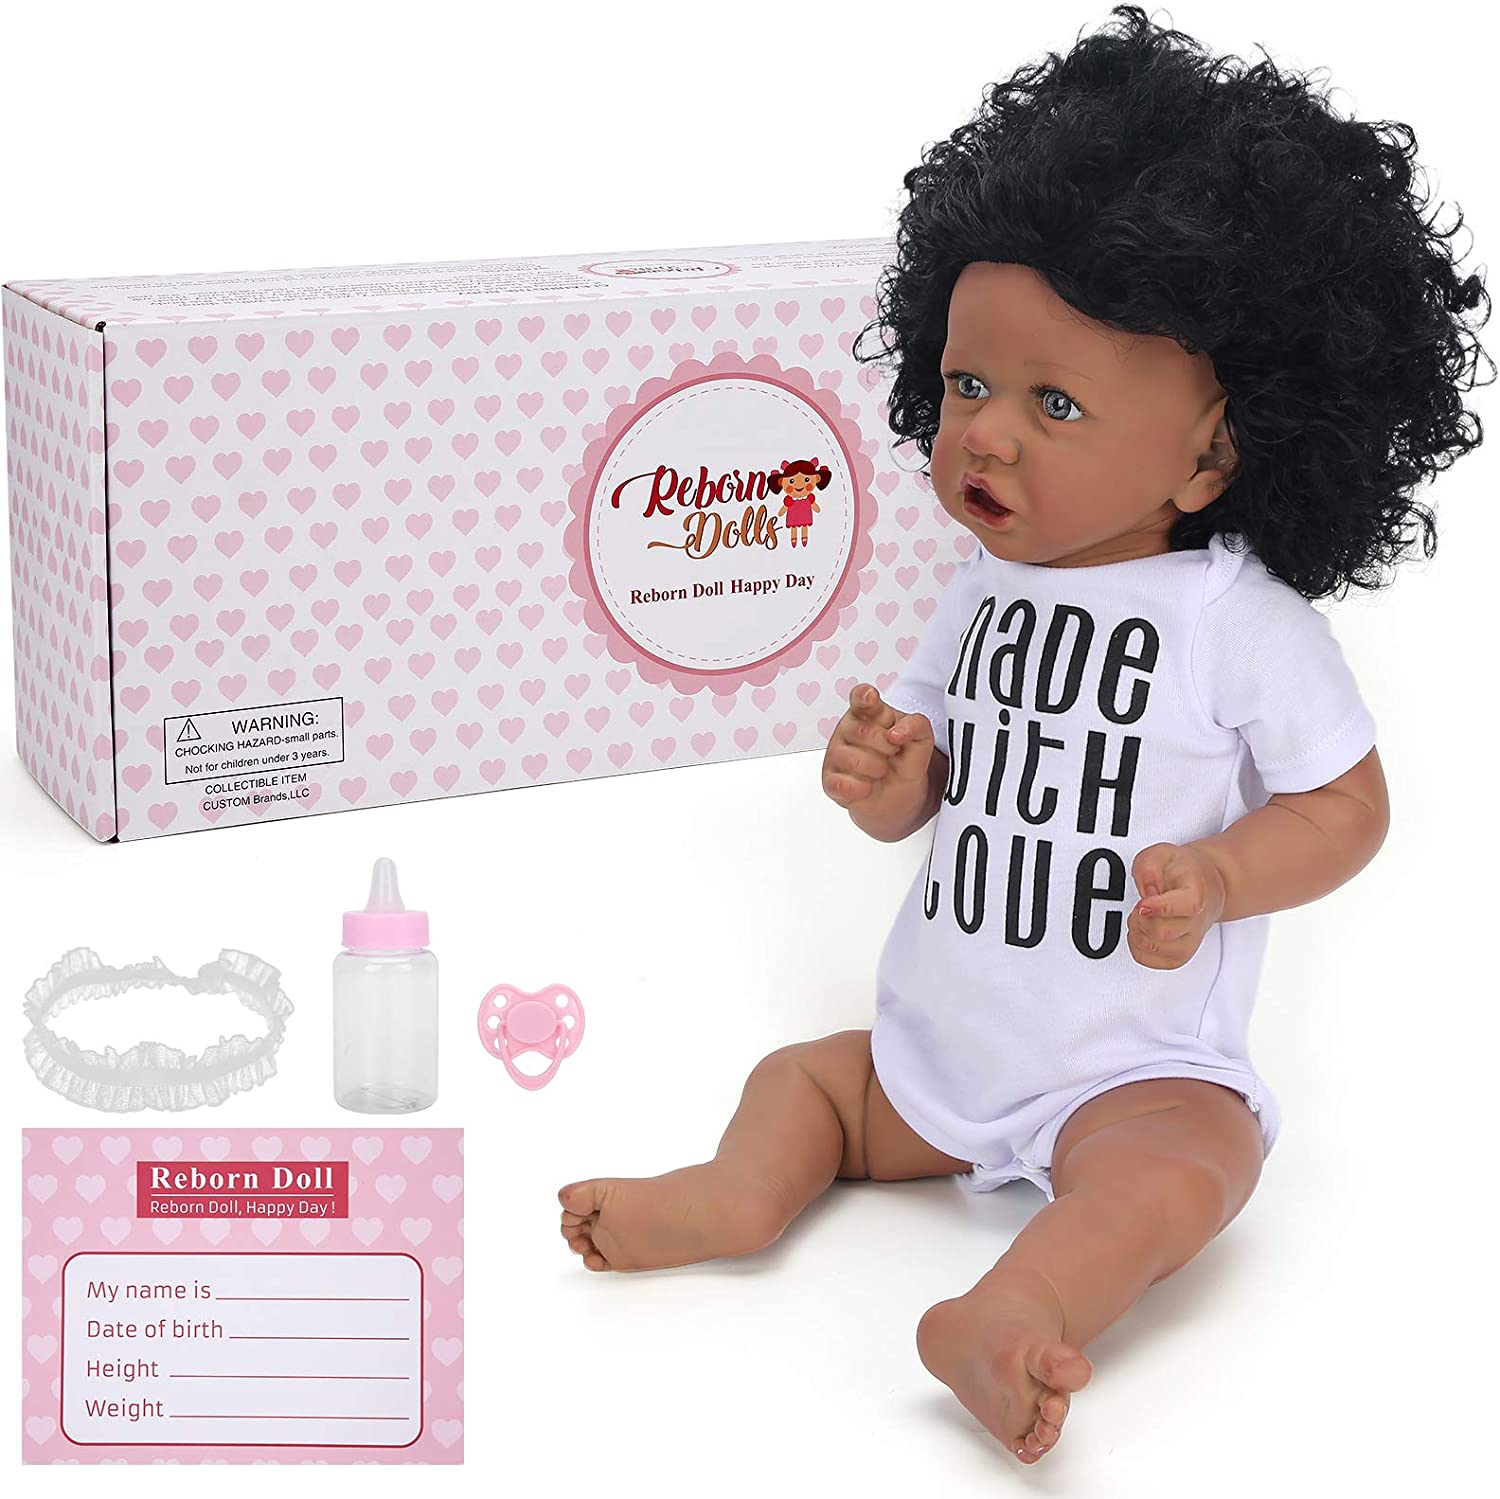 22in Soft Baby Doll 業界No.1 Lifelike Simulated White Do Shirt 激安超特価 Waterproof